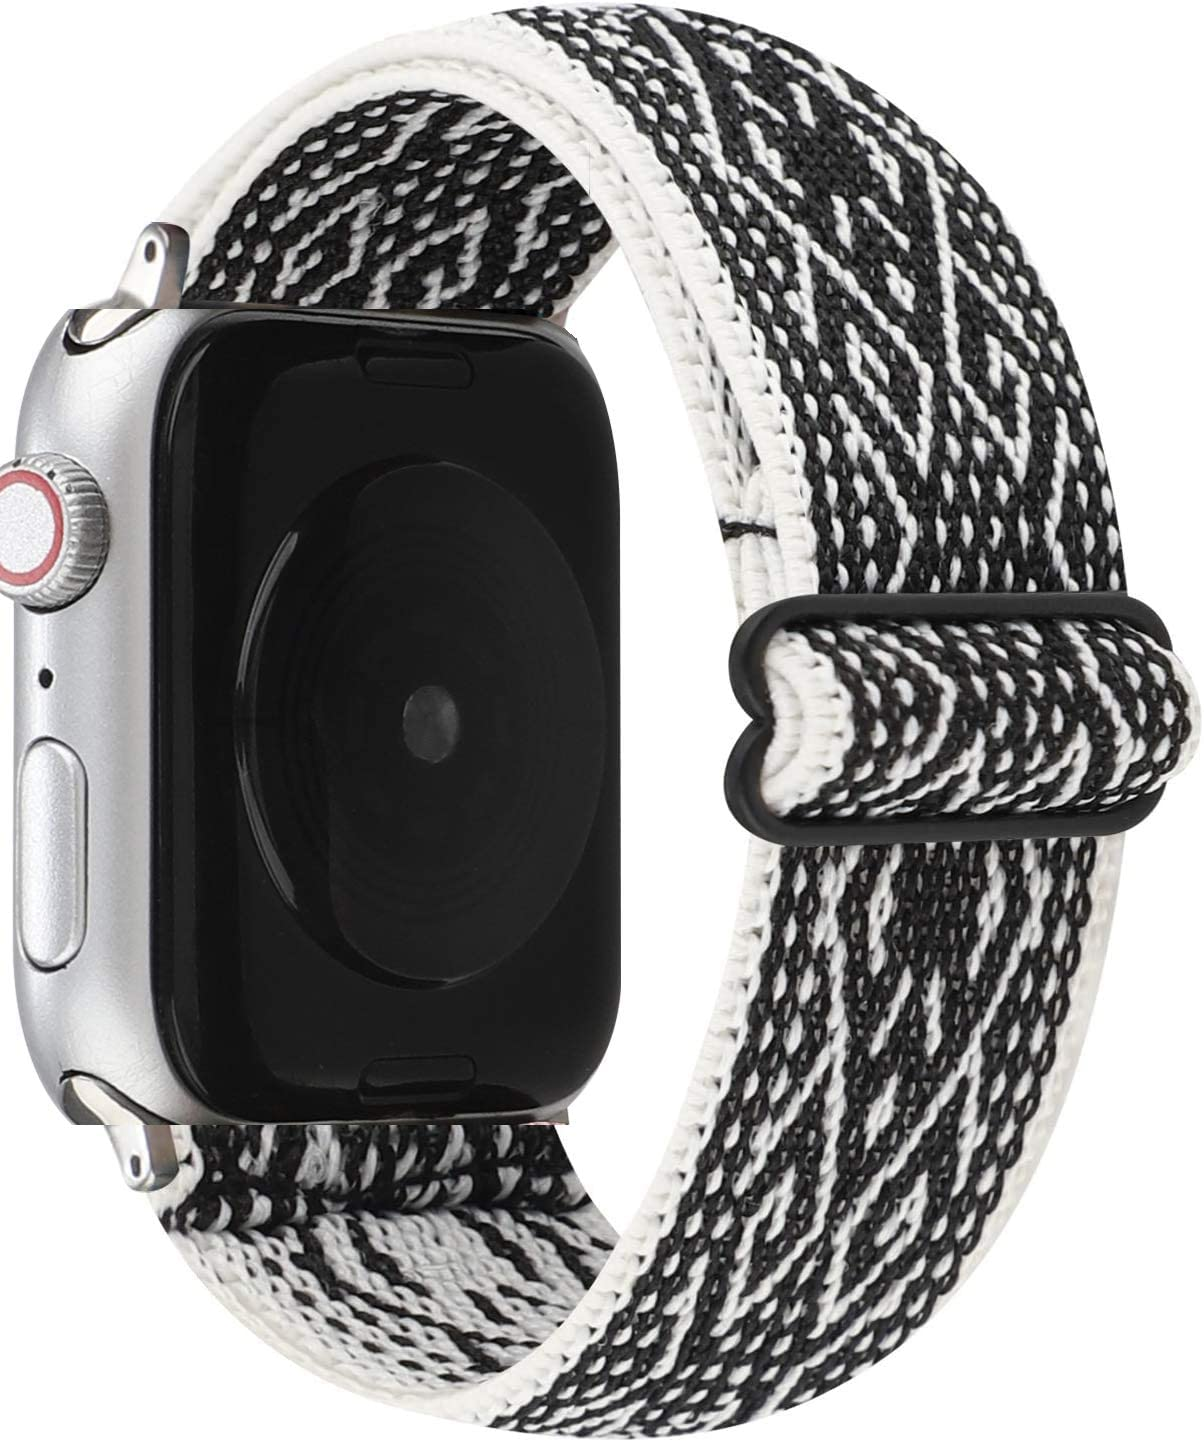 JimBird Adjustable Elastic Stretchy Sport Loop Compatible for Apple Watch Band 38mm/40mm, Soft Stretch Women Strap Replacement for Series 6/SE/5/4/3/2/1 (Black-White, 38/40 mm)